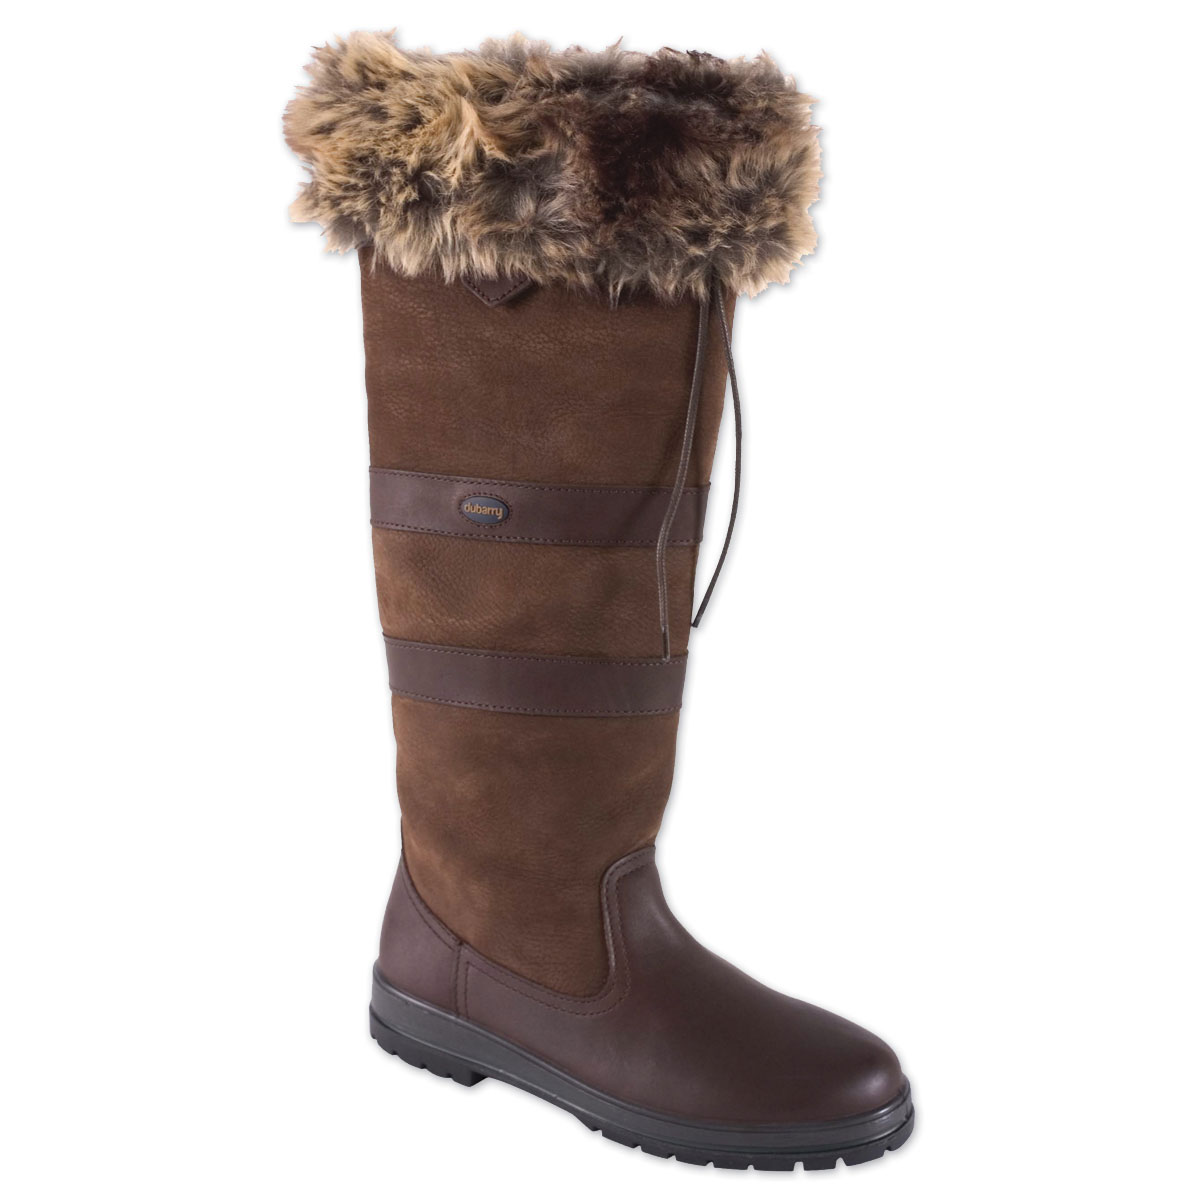 Dubarry Boot Liners